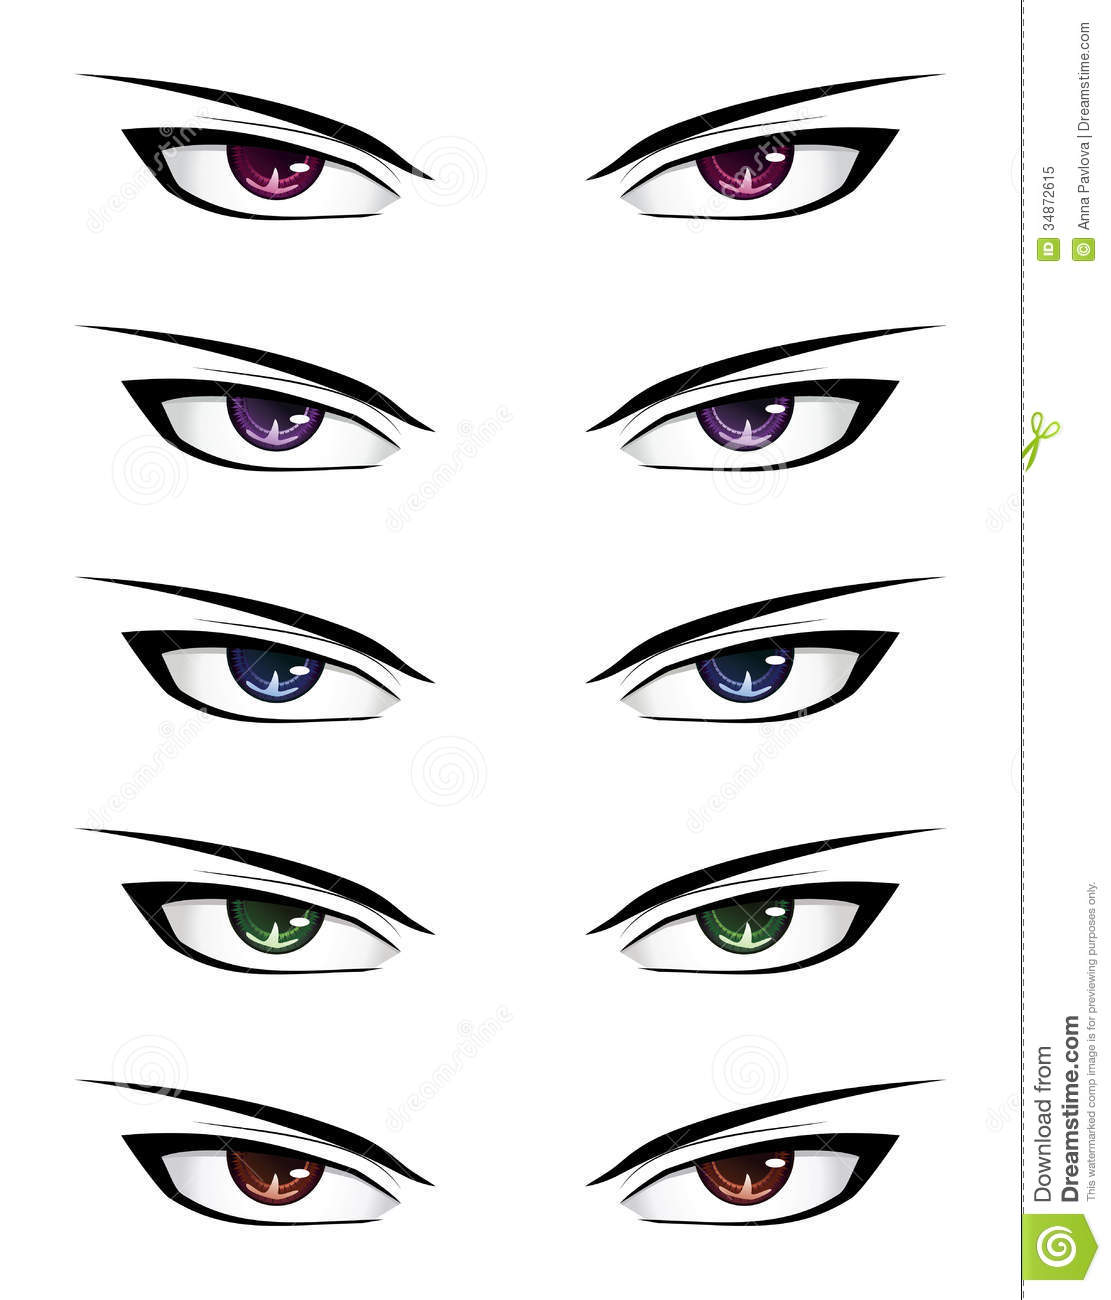 Anime Male Eyes Royalty Free Stock Photo Image 34872615